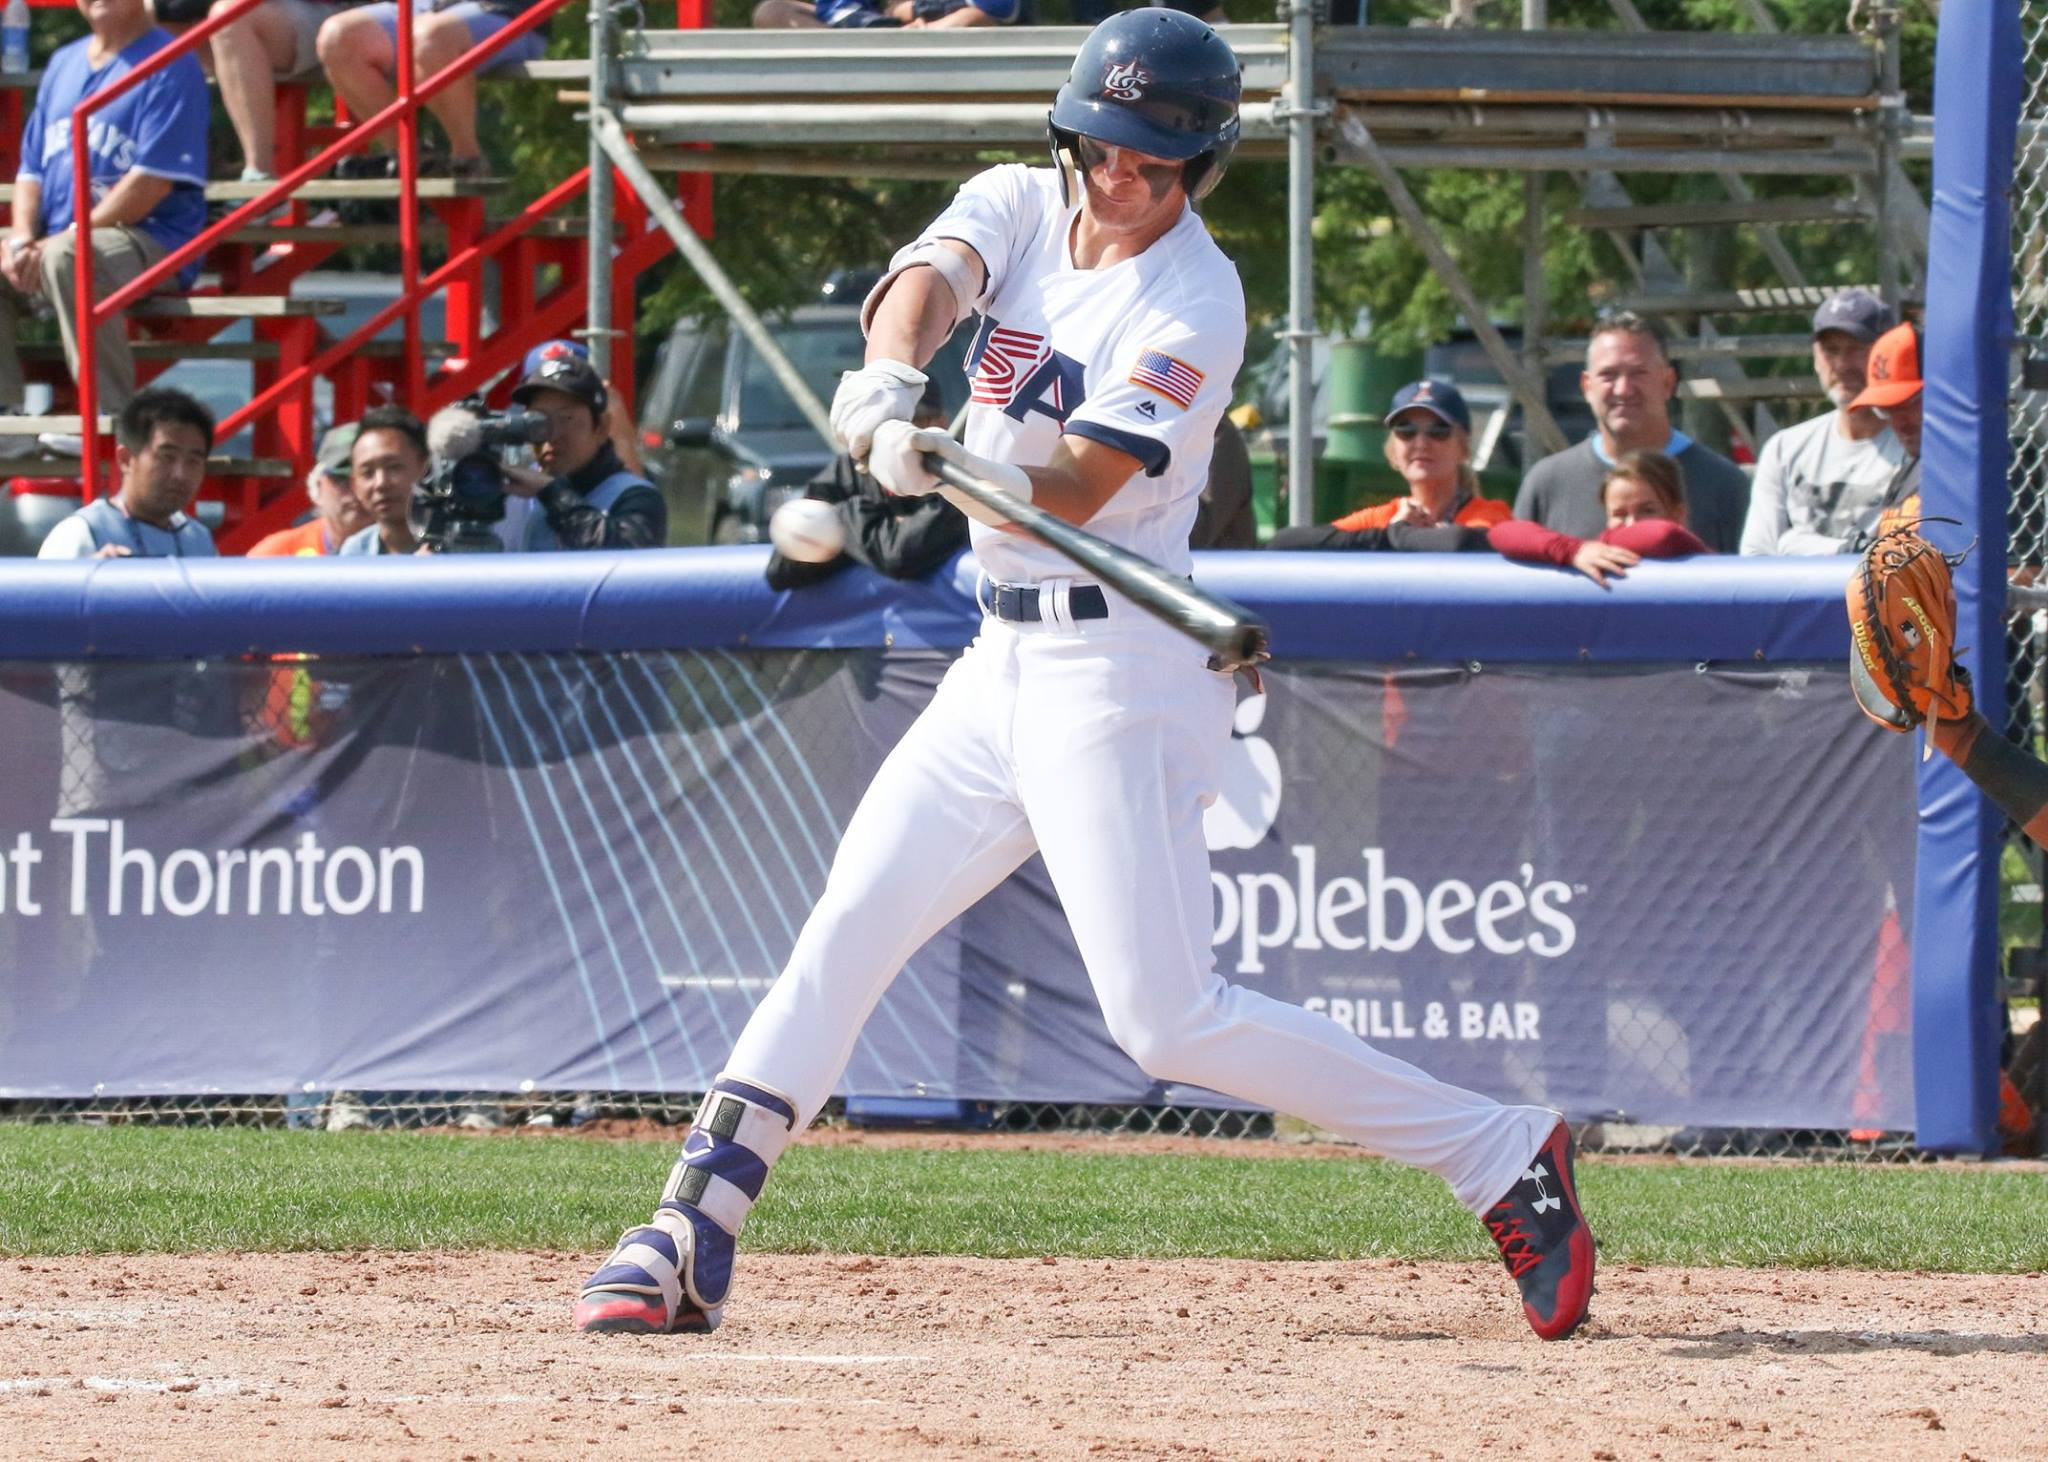 Defending champions United States begin WBSC Under-18 World Cup with big victory